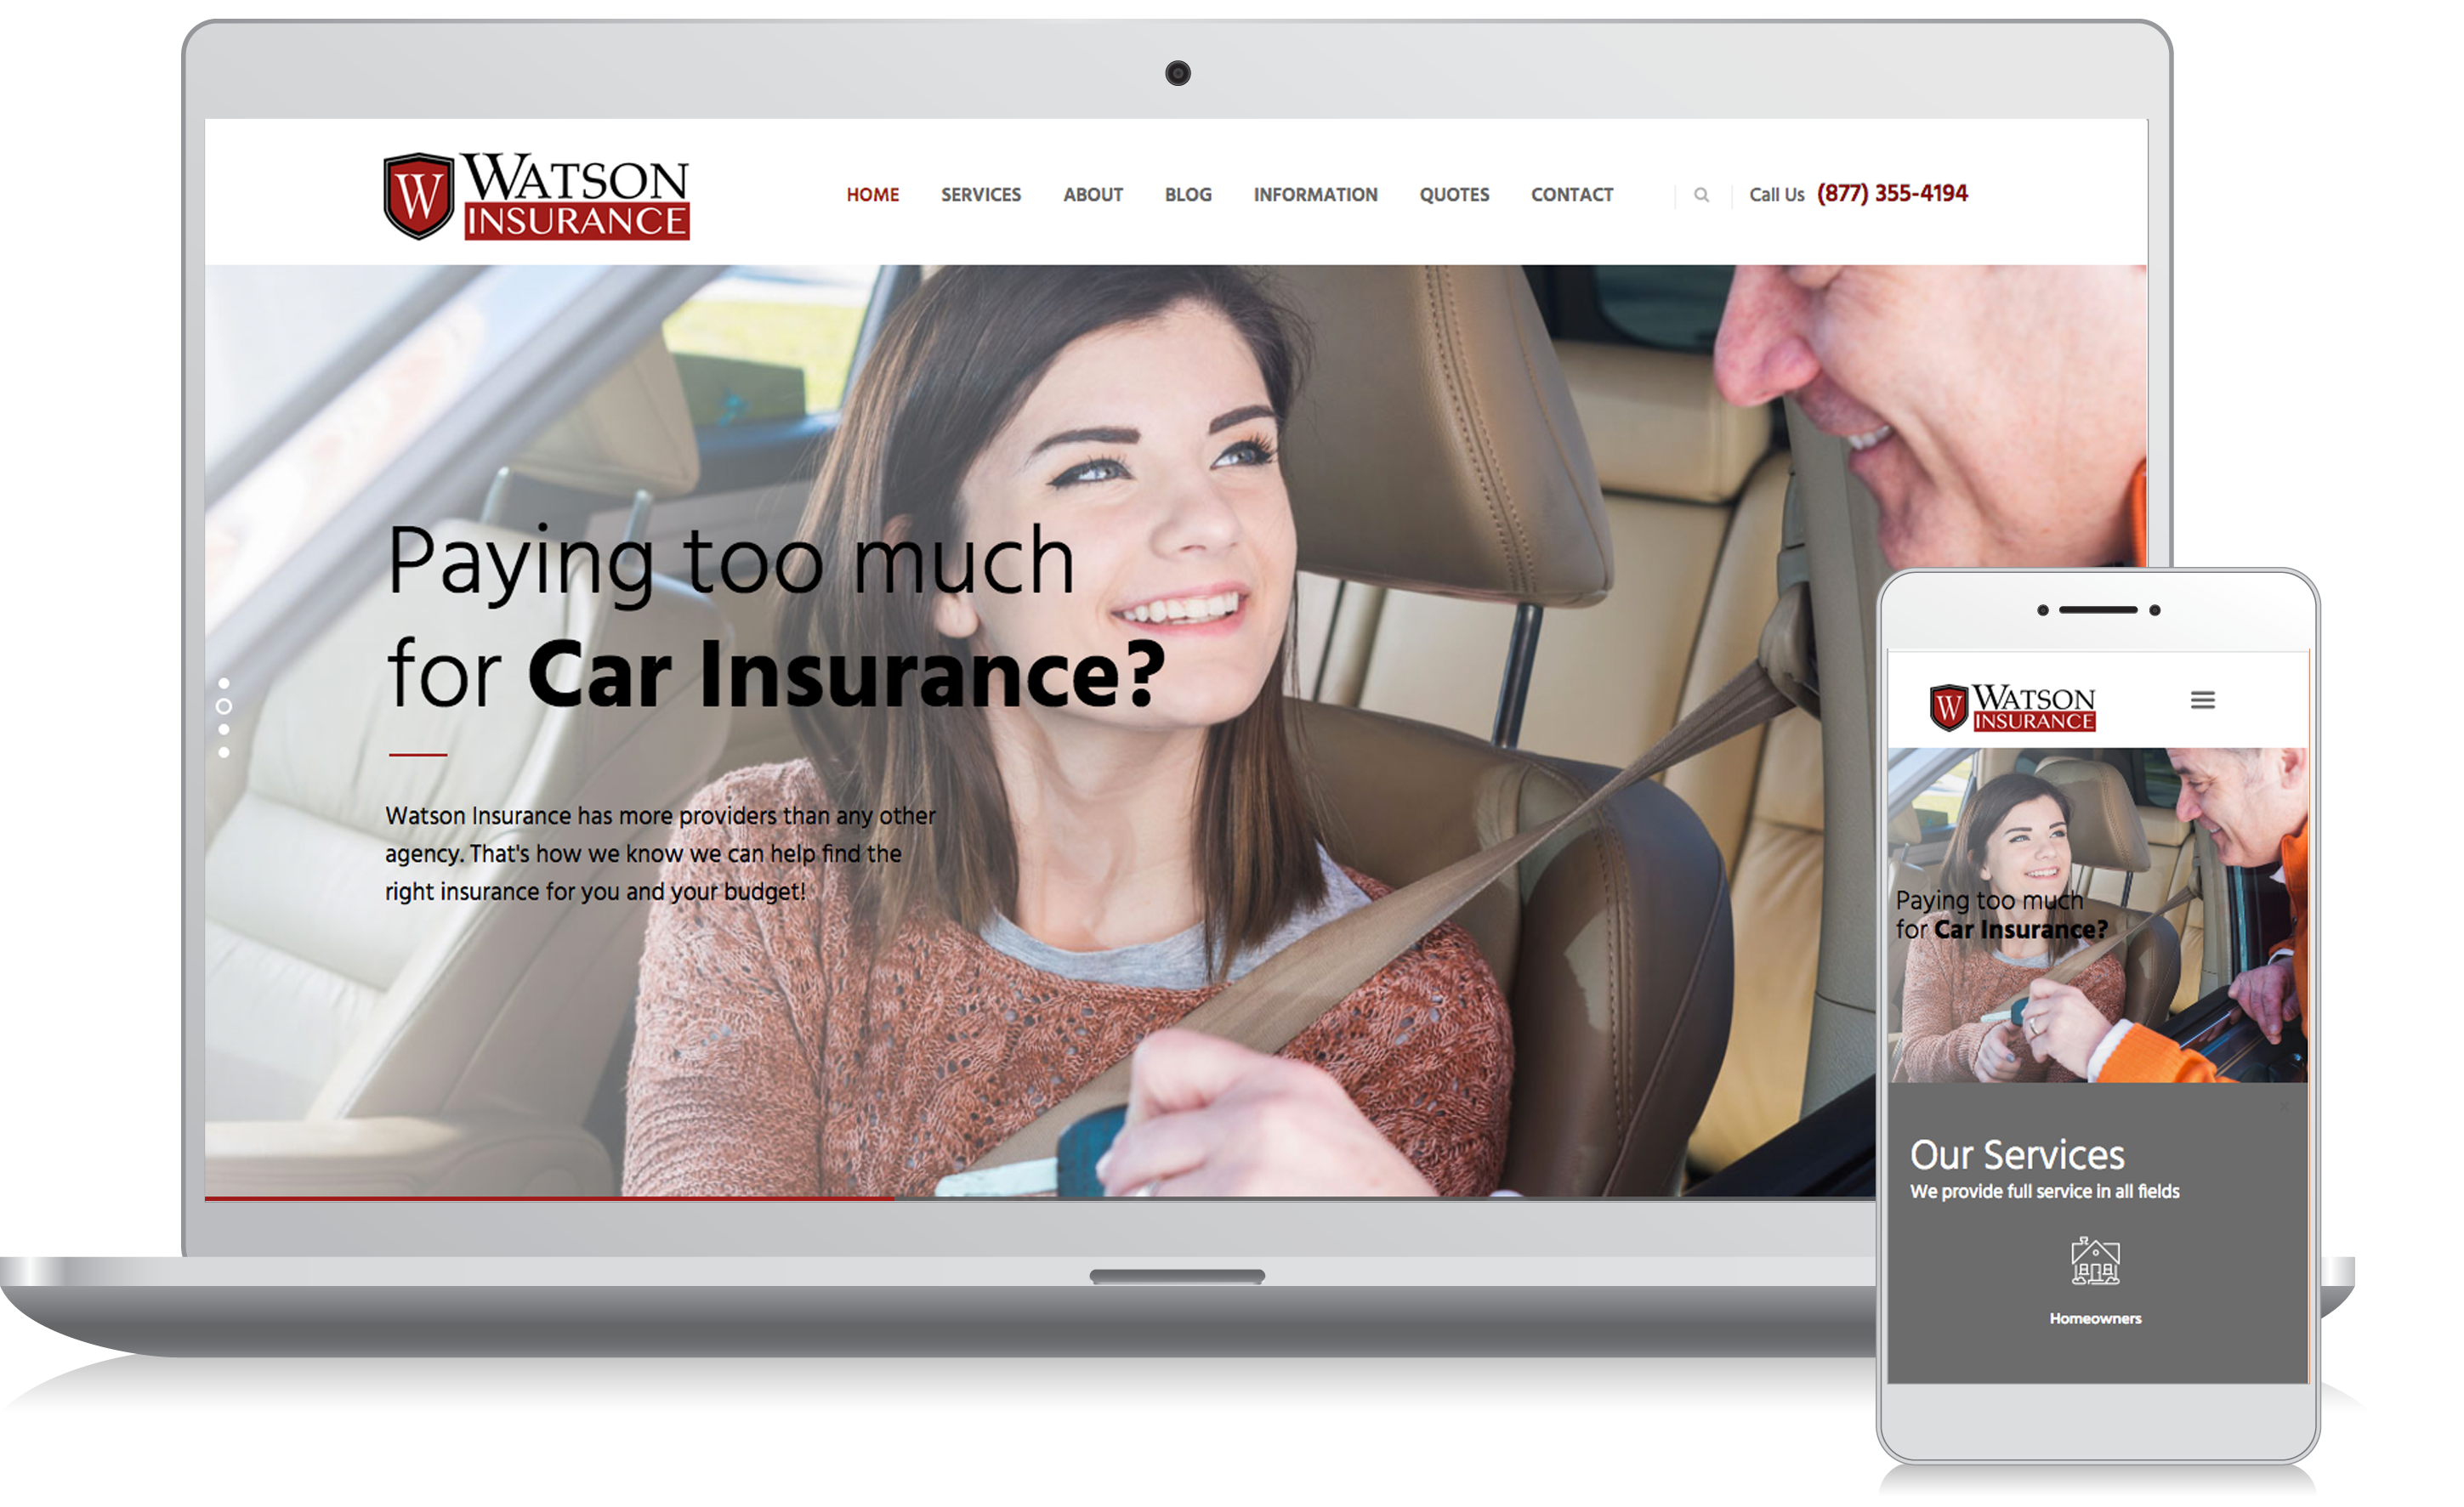 Cellphone and computer image of the Watson Insurance website homepage